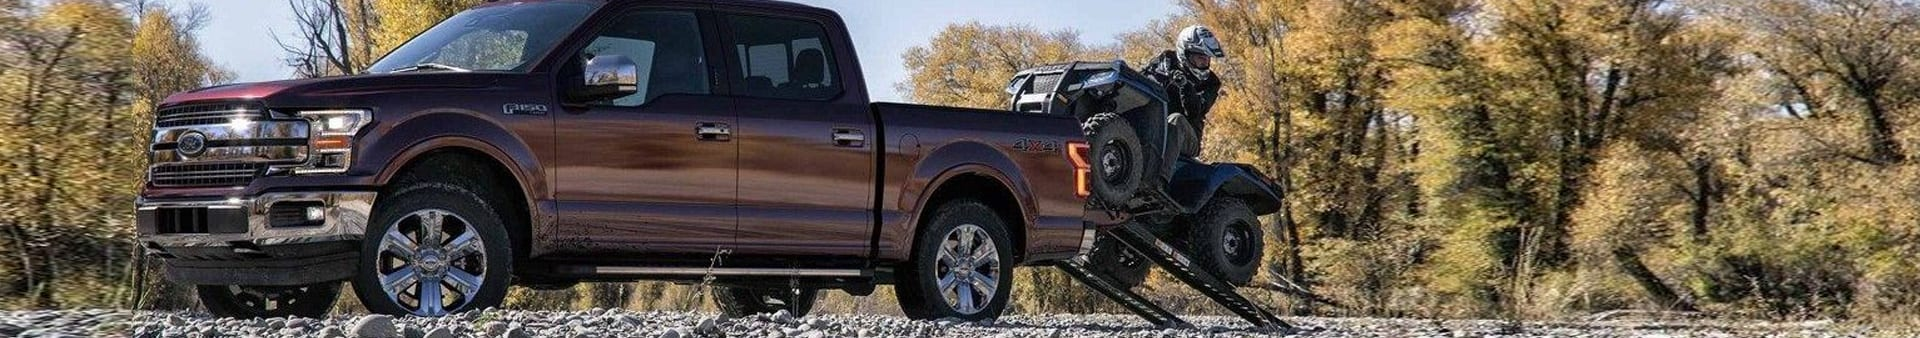 The Ford F-150 Lariat and Platinum